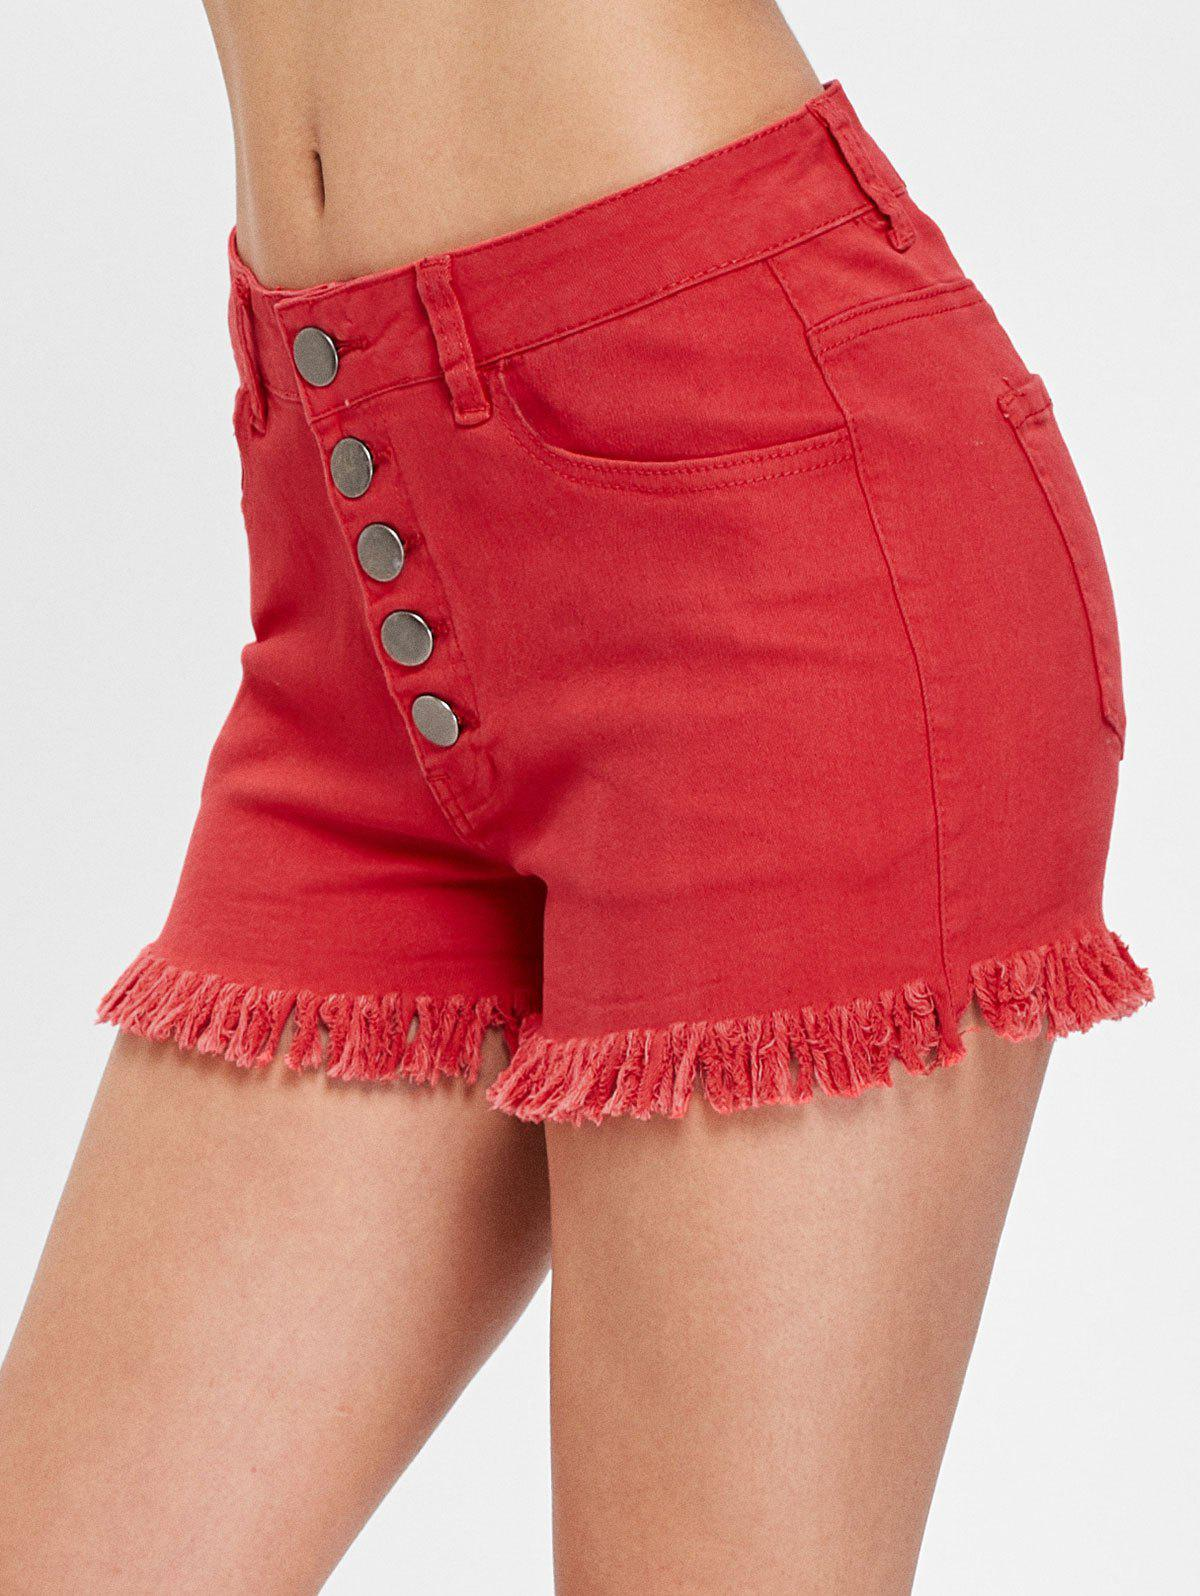 Button Fly Frayed Trim Jeans Shorts